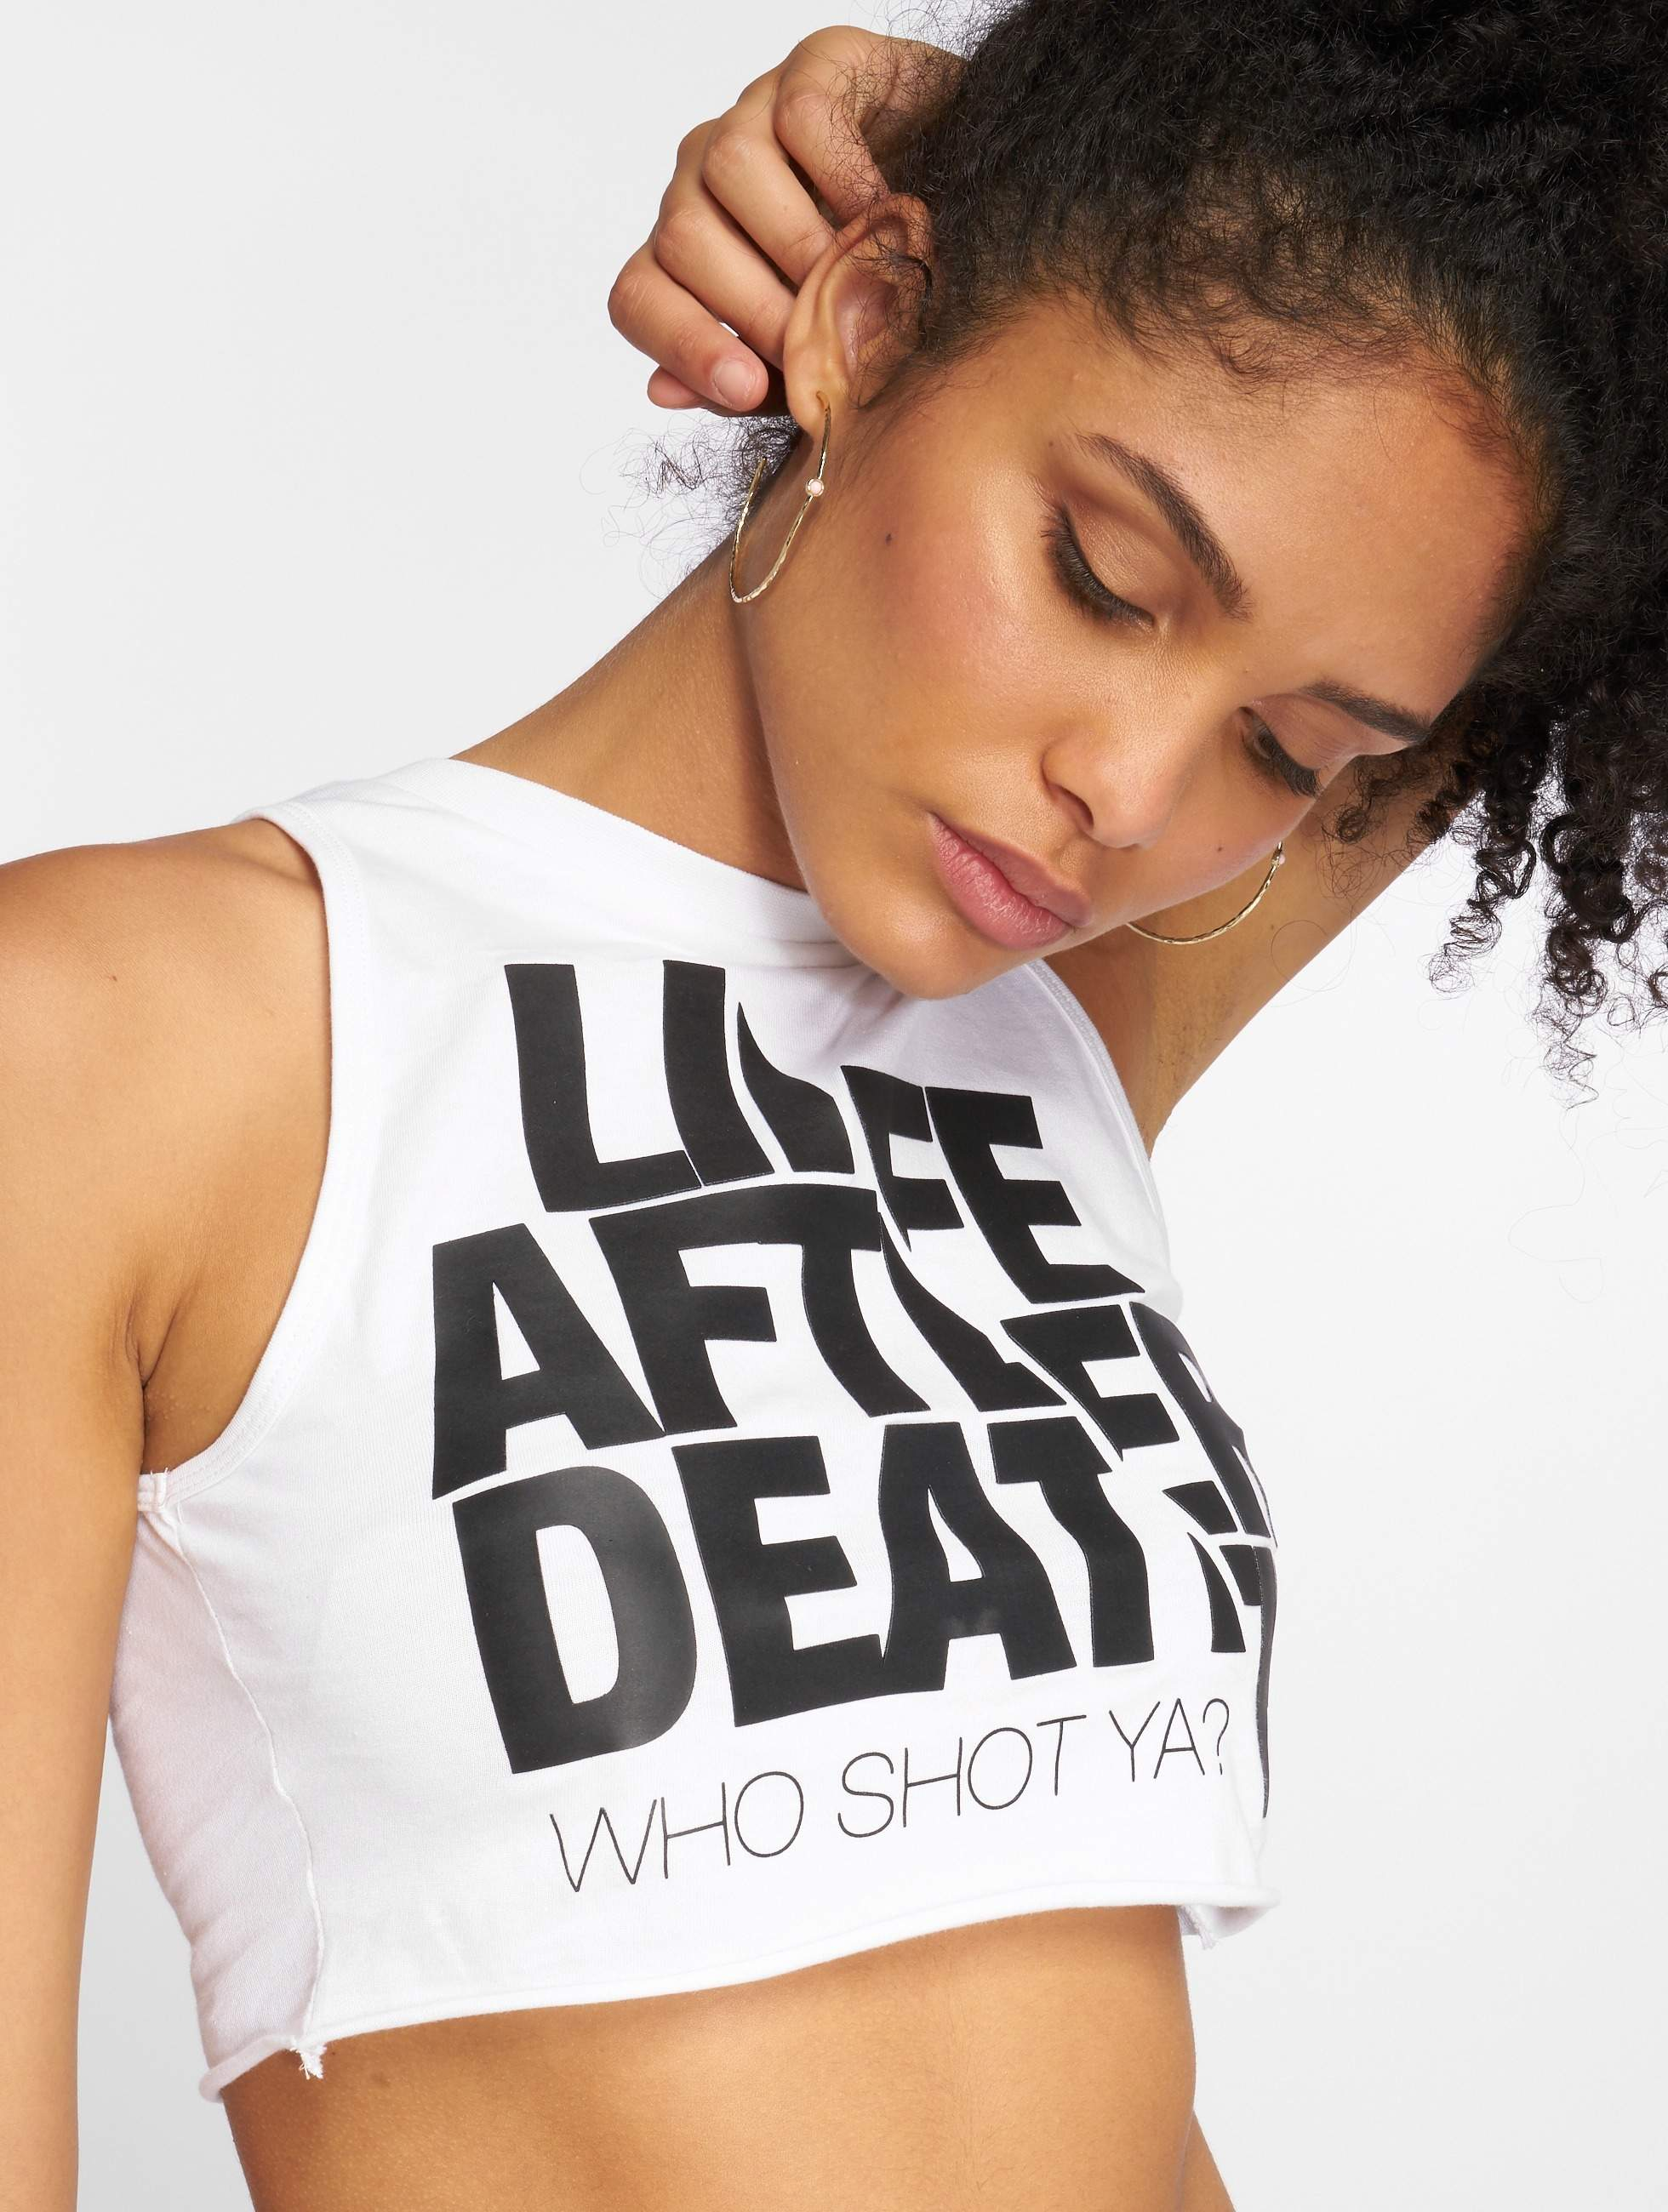 Who Shot Ya? / Tank Tops Life after death in white XL